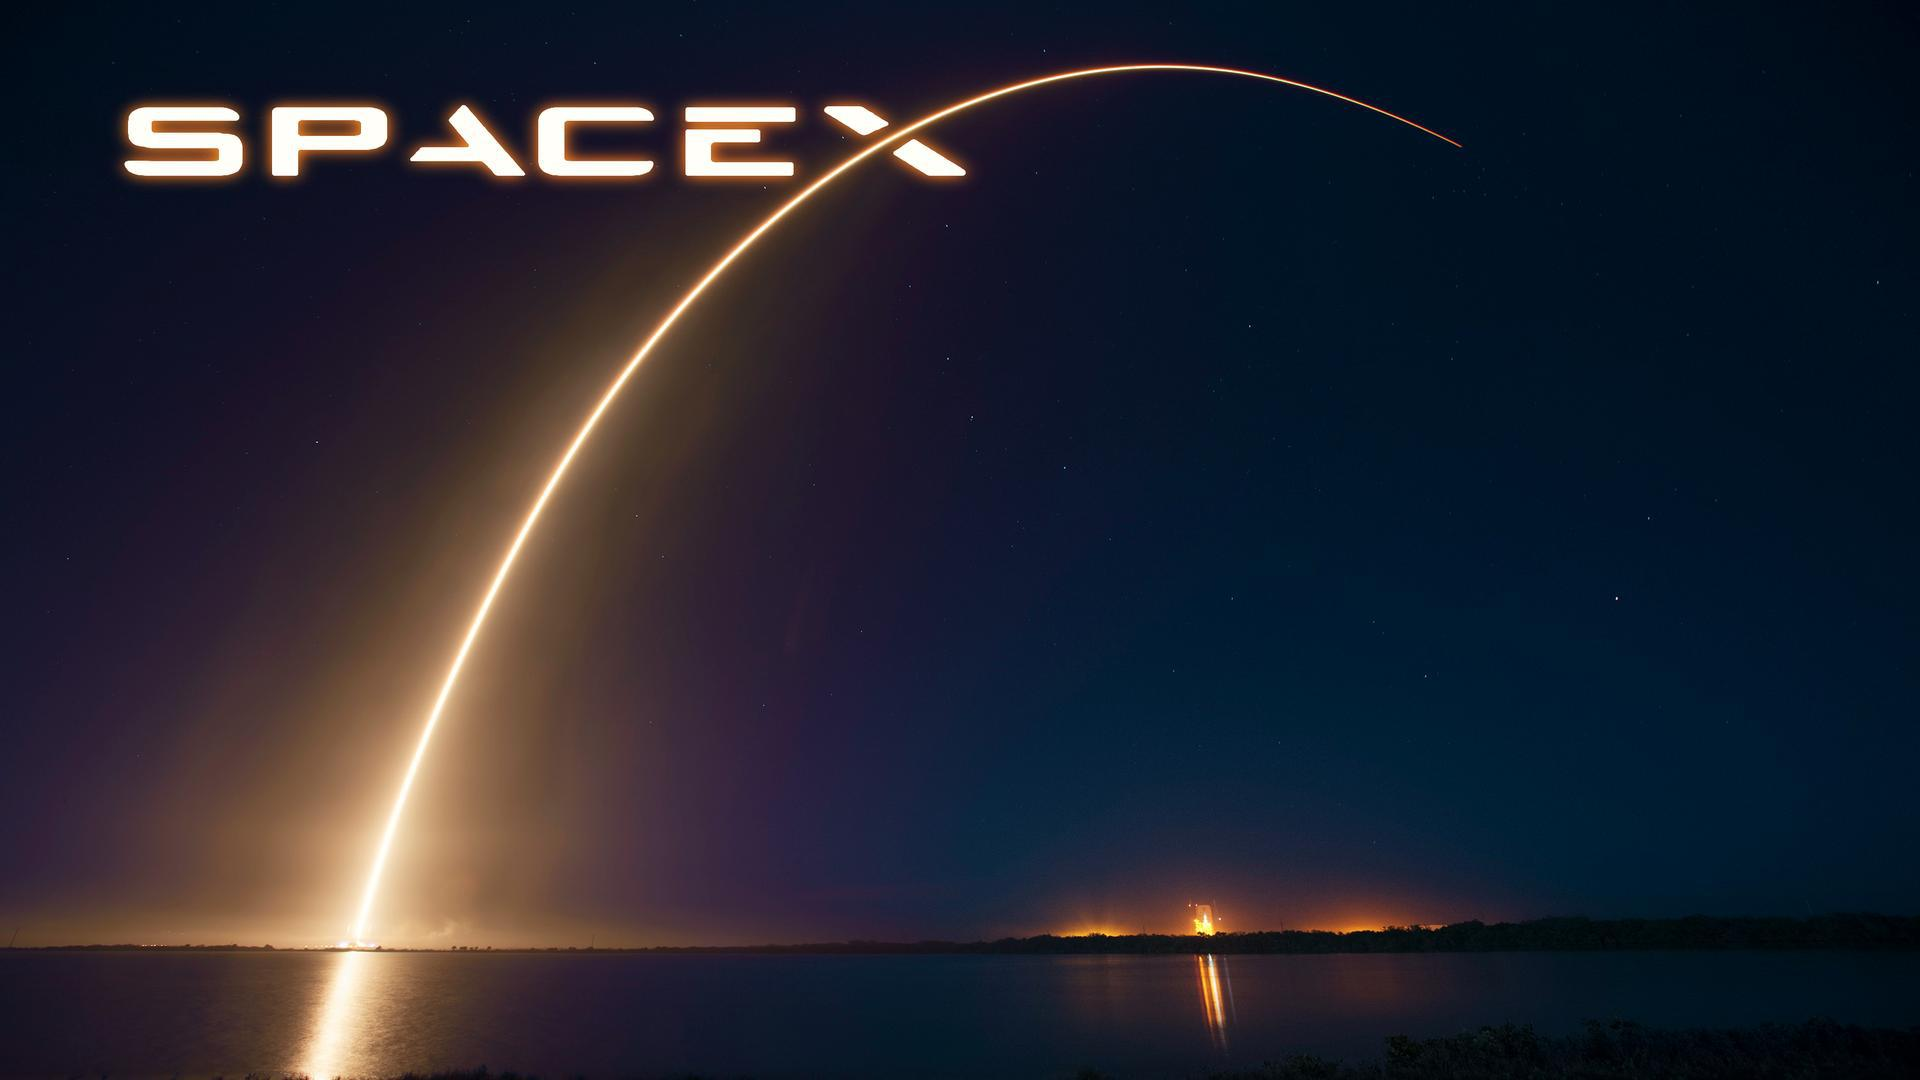 SpaceX Computer Backgrounds